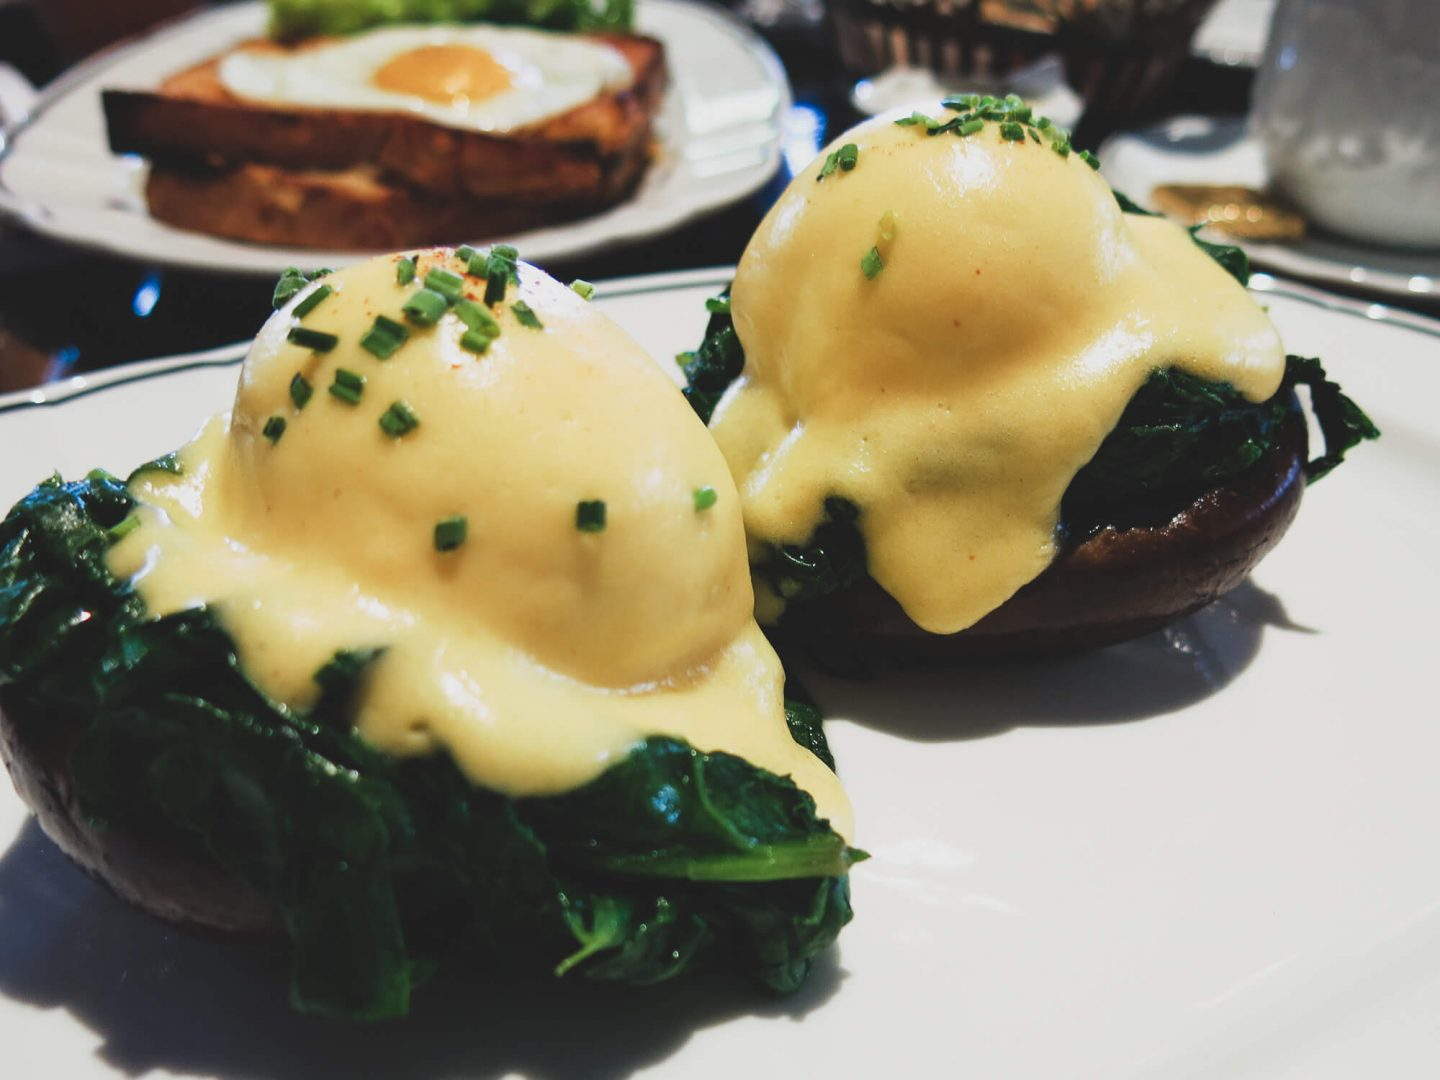 Eggs Portobello at Bellanger. Portobello mushrooms topped with spinach, poached eggs and hollandaise sauce. Great restaurant for brunch in London.